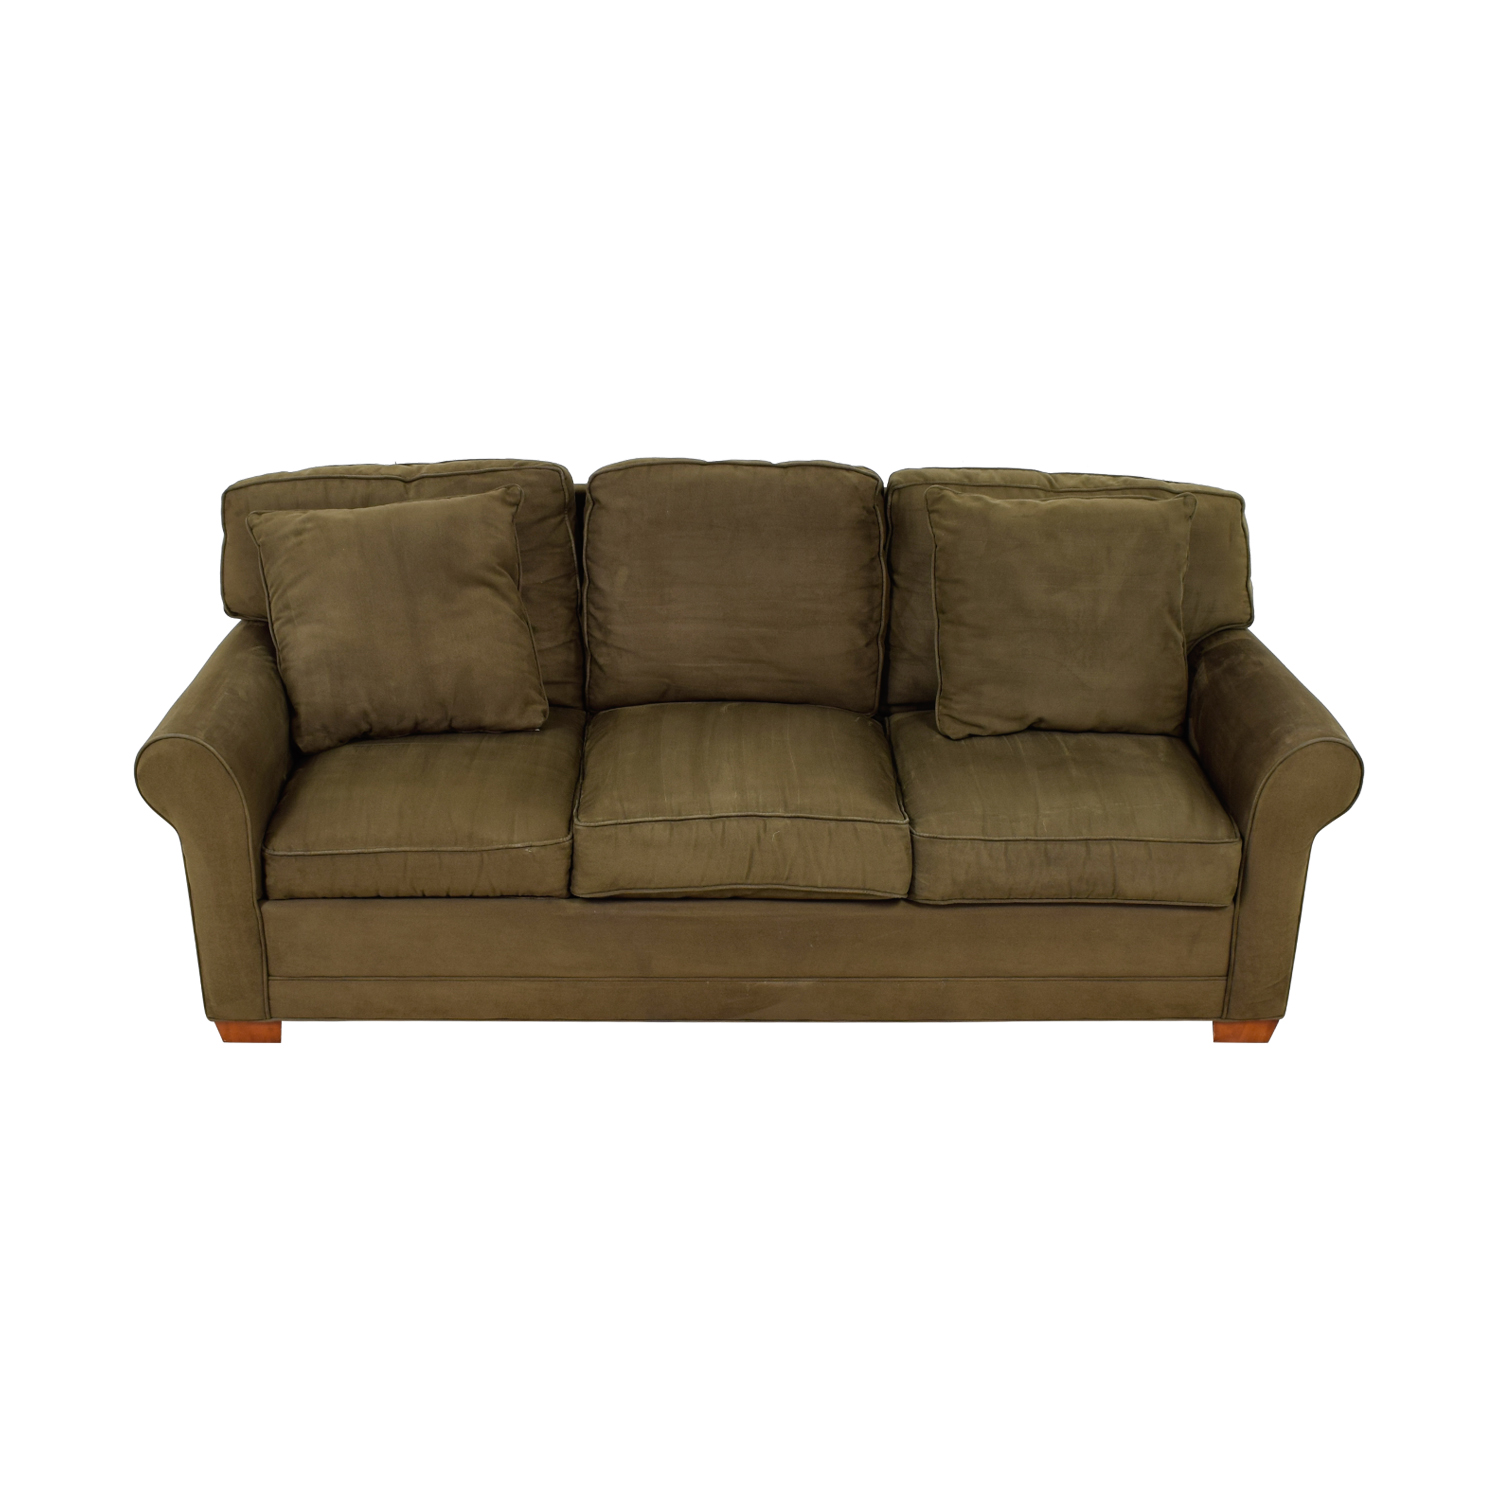 Raymour & Flanigan Raymour & Flanigan Brown  Suede Three-Cushion Couch for sale